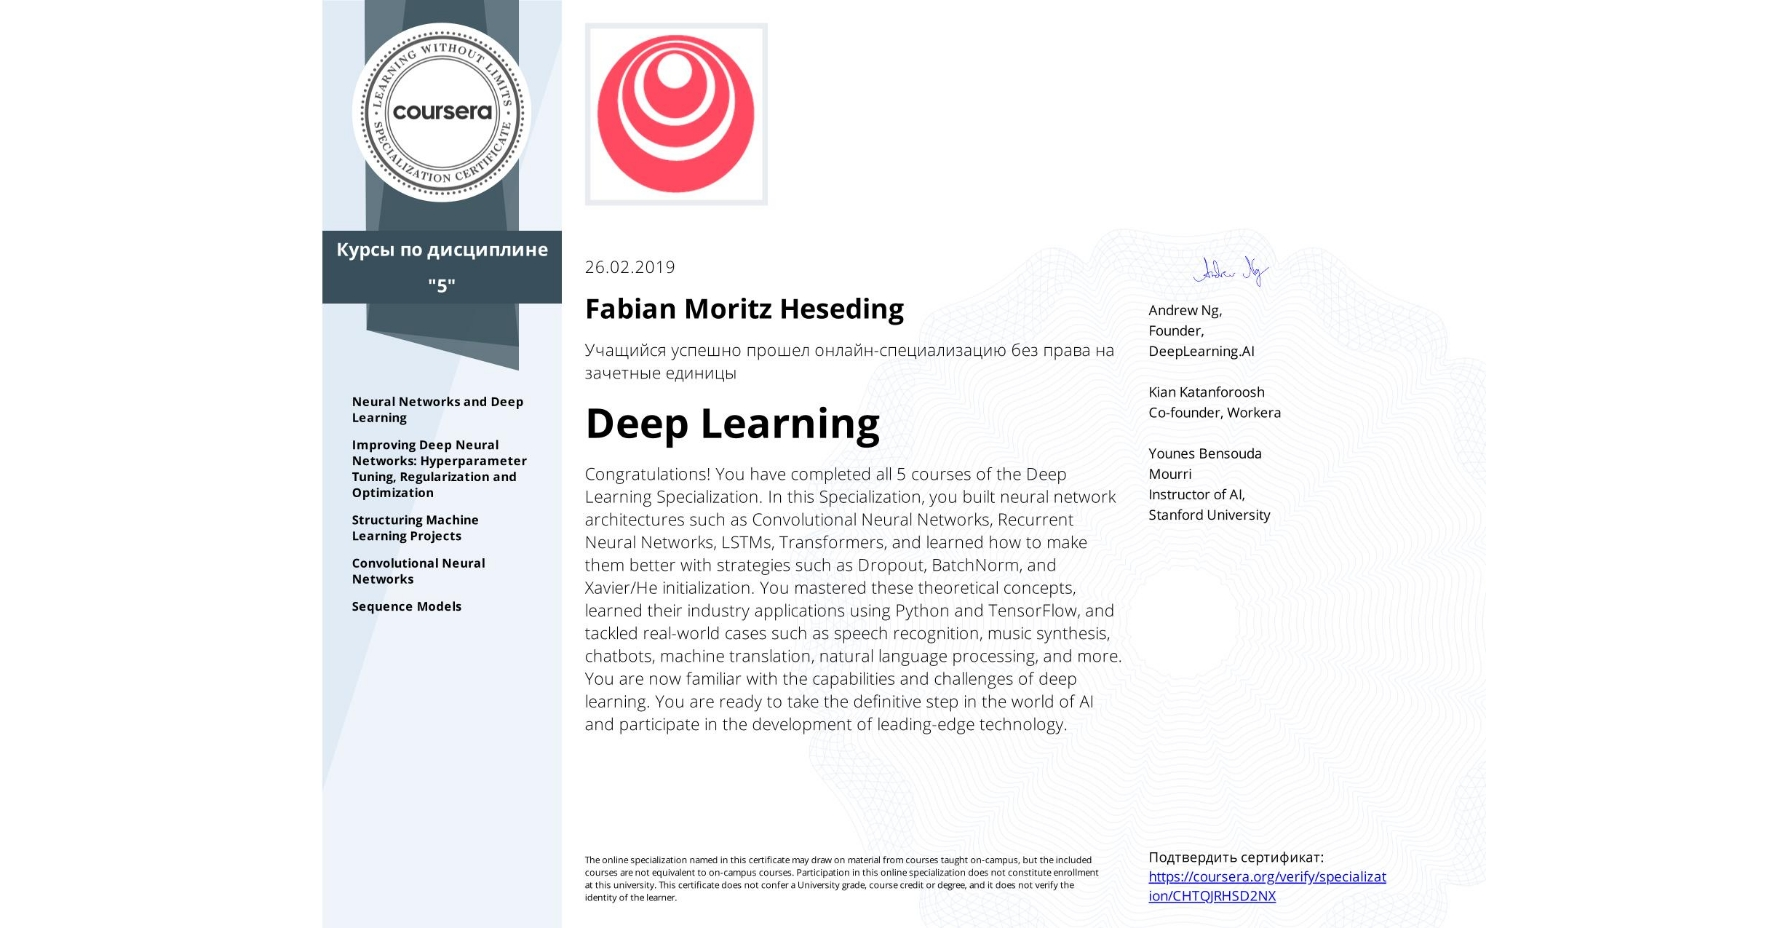 View certificate for Fabian Moritz Heseding, Deep Learning, offered through Coursera. The Deep Learning Specialization is designed to prepare learners to participate in the development of cutting-edge AI technology, and to understand the capability, the challenges, and the consequences of the rise of deep learning. Through five interconnected courses, learners develop a profound knowledge of the hottest AI algorithms, mastering deep learning from its foundations (neural networks) to its industry applications (Computer Vision, Natural Language Processing, Speech Recognition, etc.).